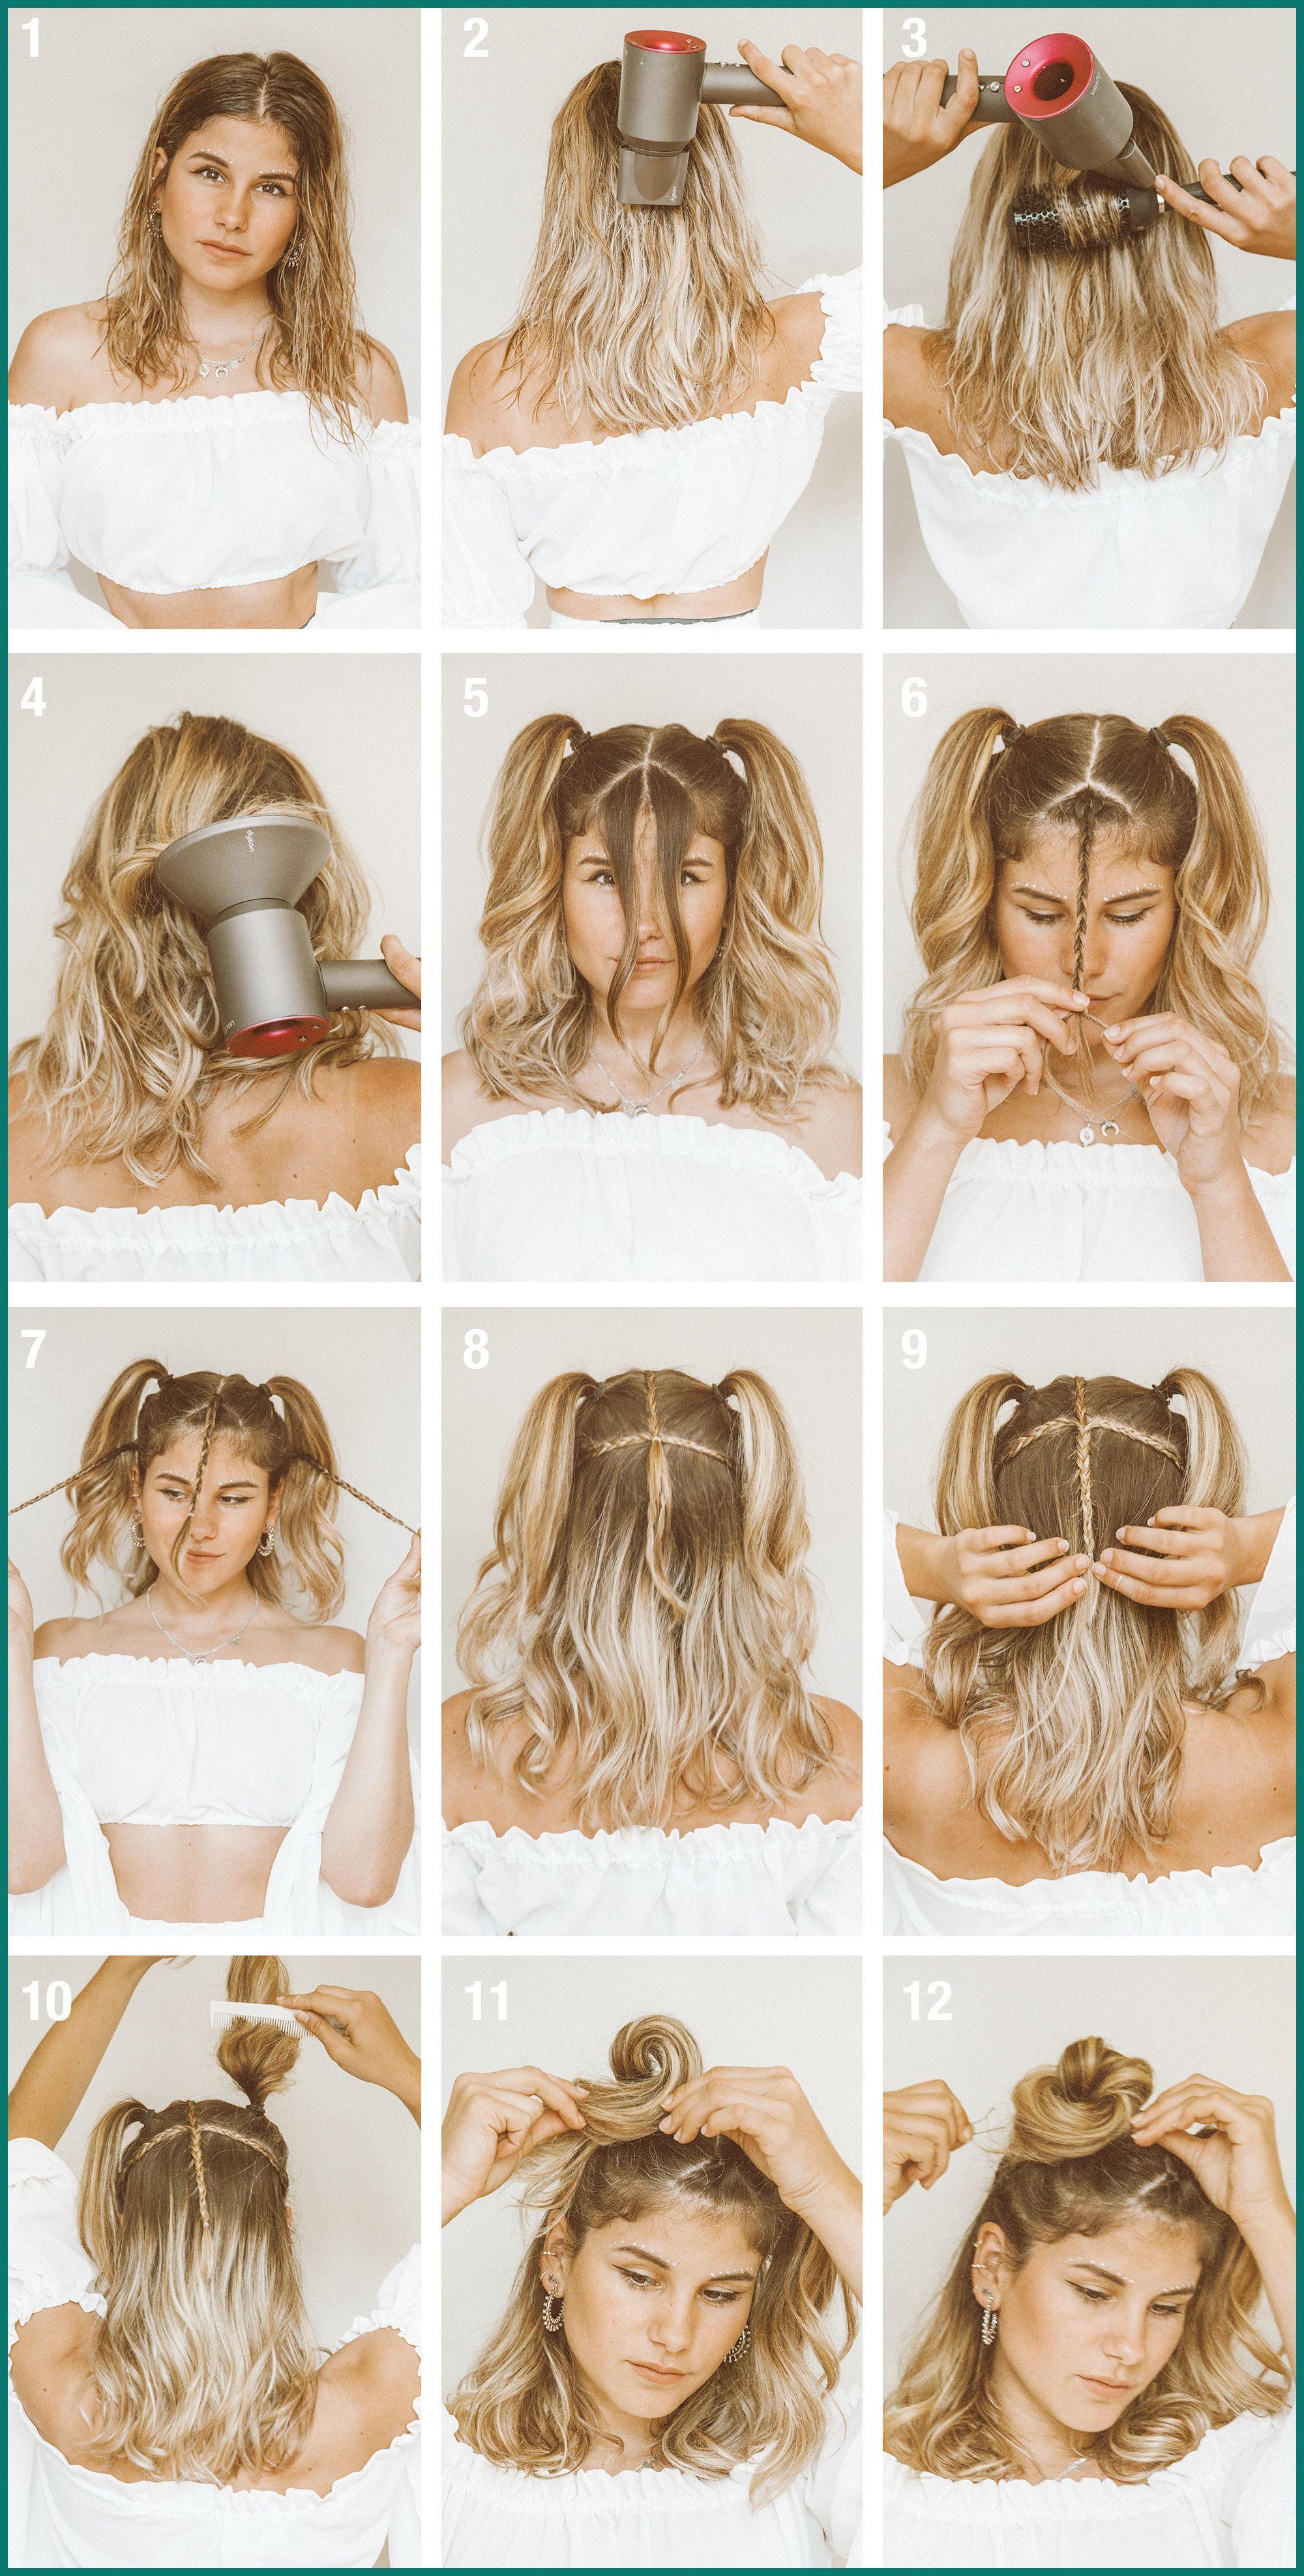 Easy Hairstyles On Short Hair Edgy In 2020 Short Hair Styles Easy Cute Simple Hairstyles Short Hair Tutorial